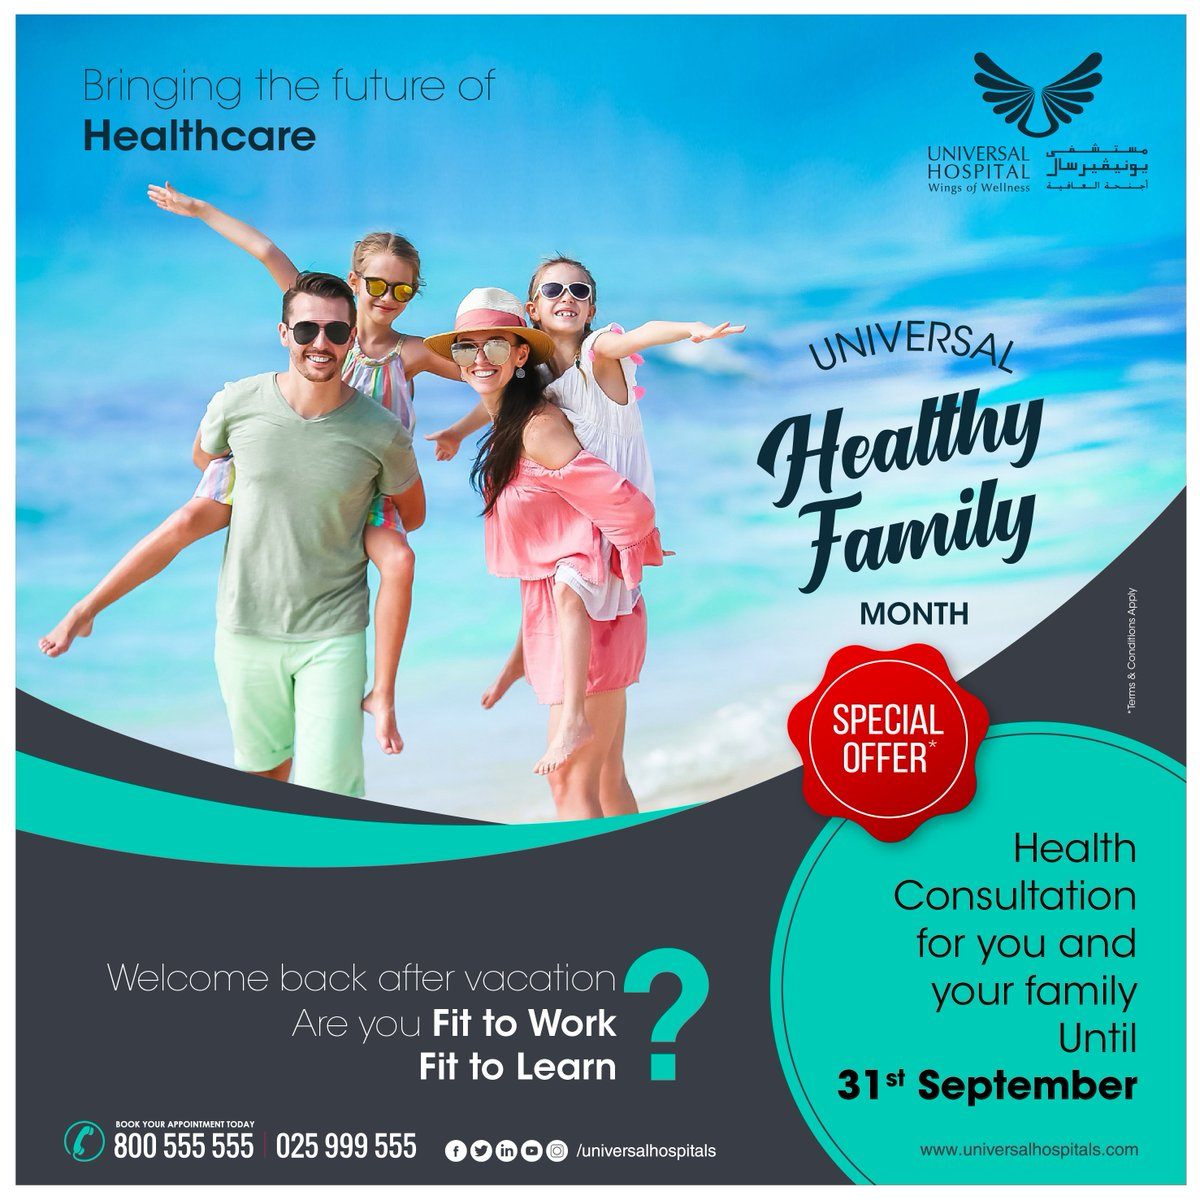 """Universal Healthy Family Month - At Universal Hospital, YOU are our priority.   Welcome back after vacation. Are you Fit to Work? Fit to Learn? """"Universal Healthy Family"""" which aims to provide healthcare service available to everyone.   #healthyfamily #healthyou #Health"""